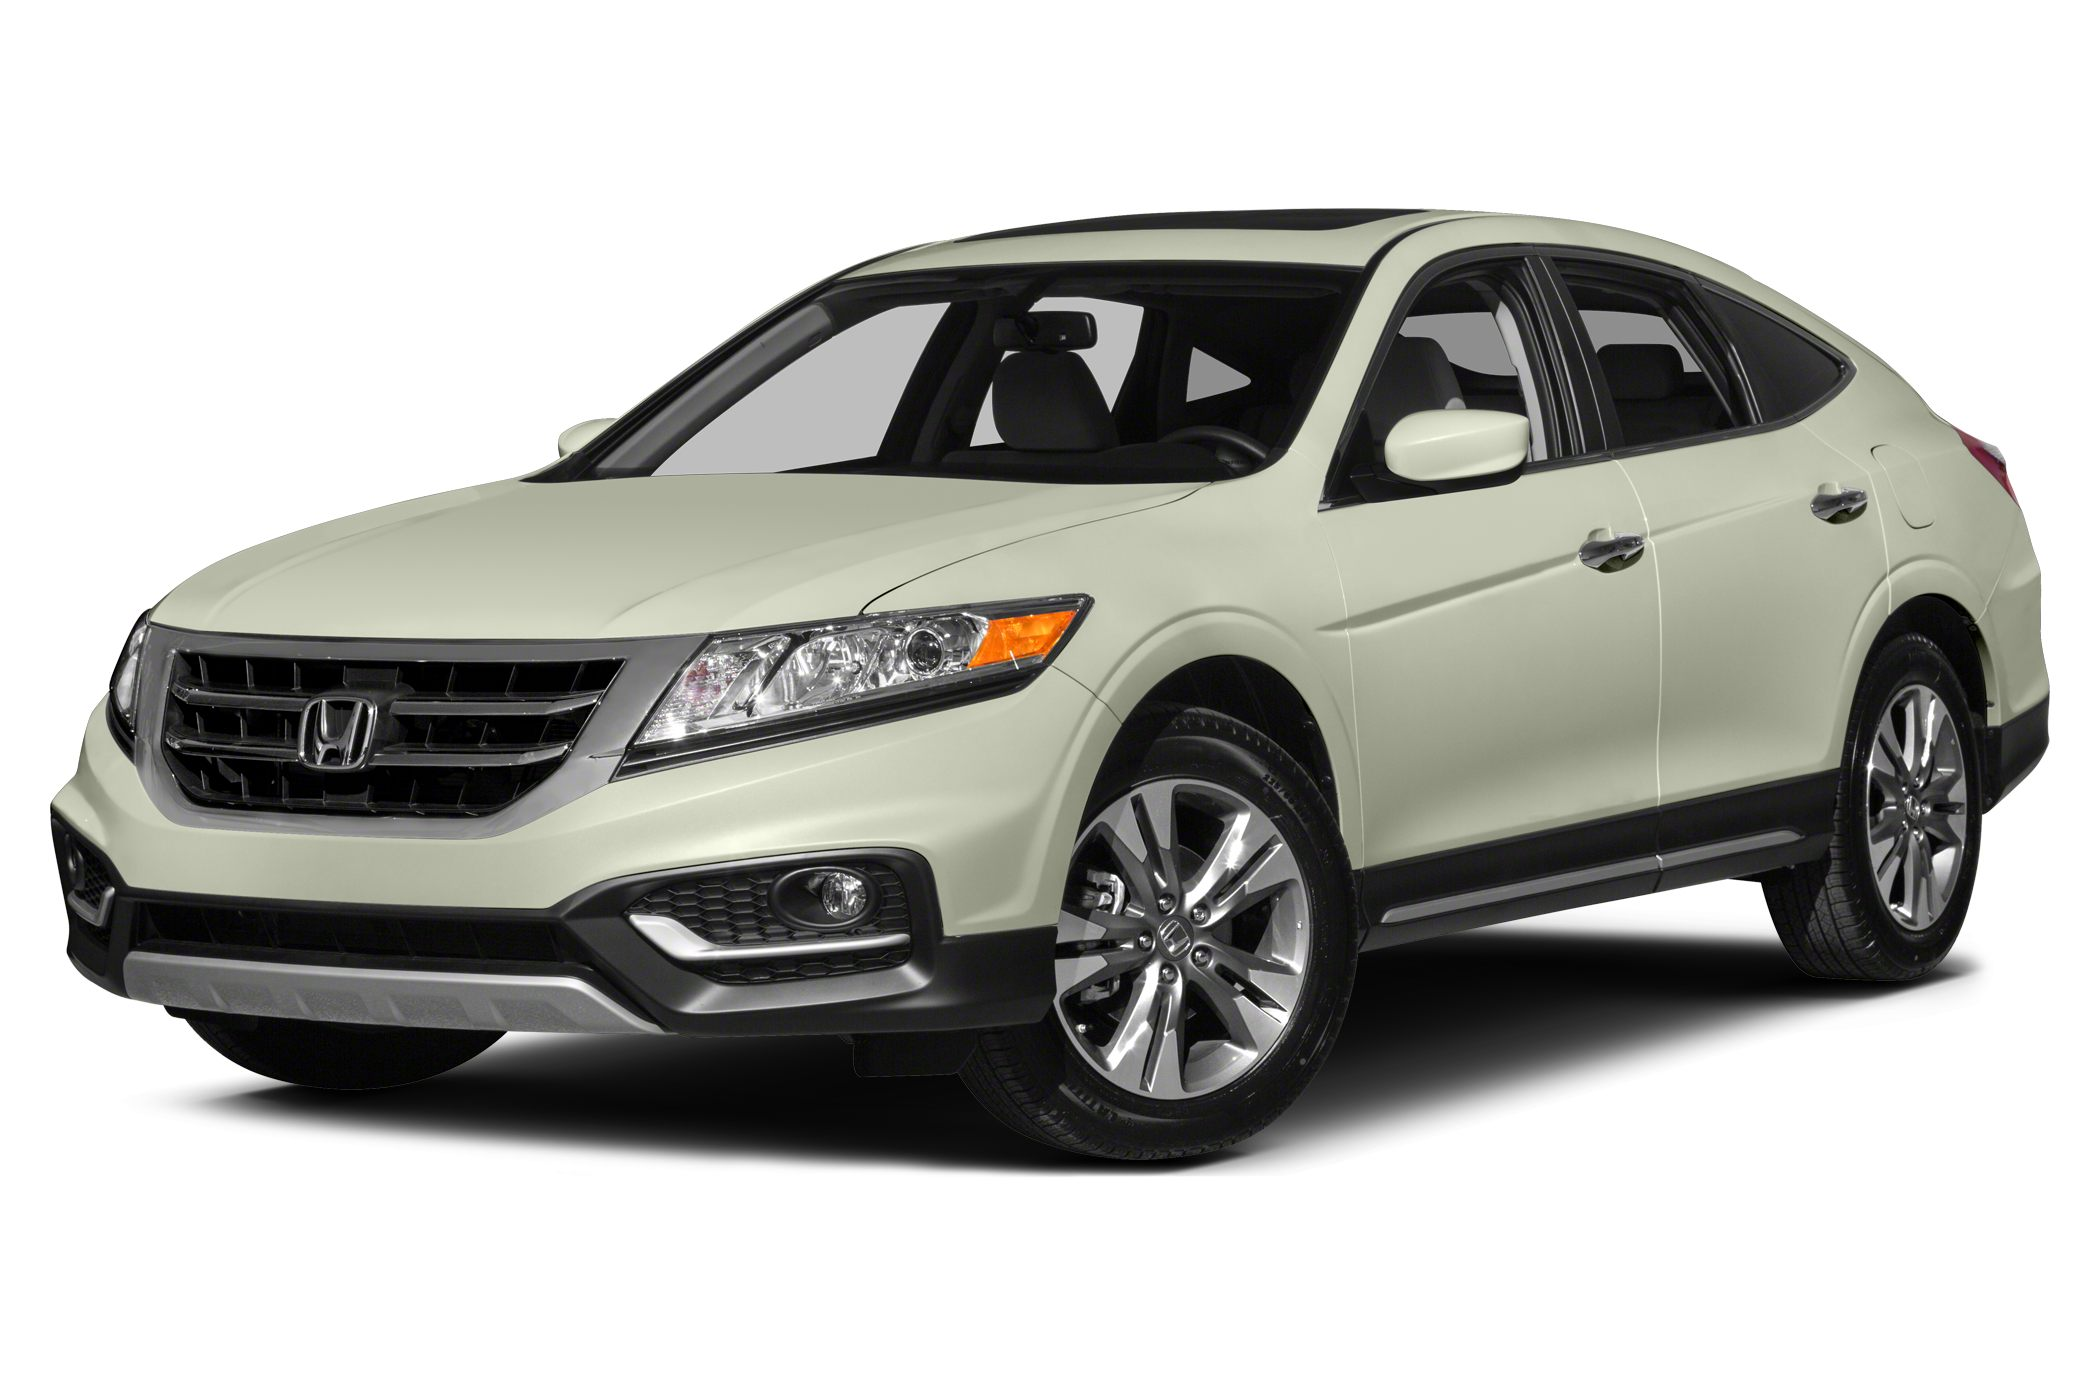 2015 Honda Crosstour EX Wagon for sale in Gadsden for $28,360 with 5 miles.